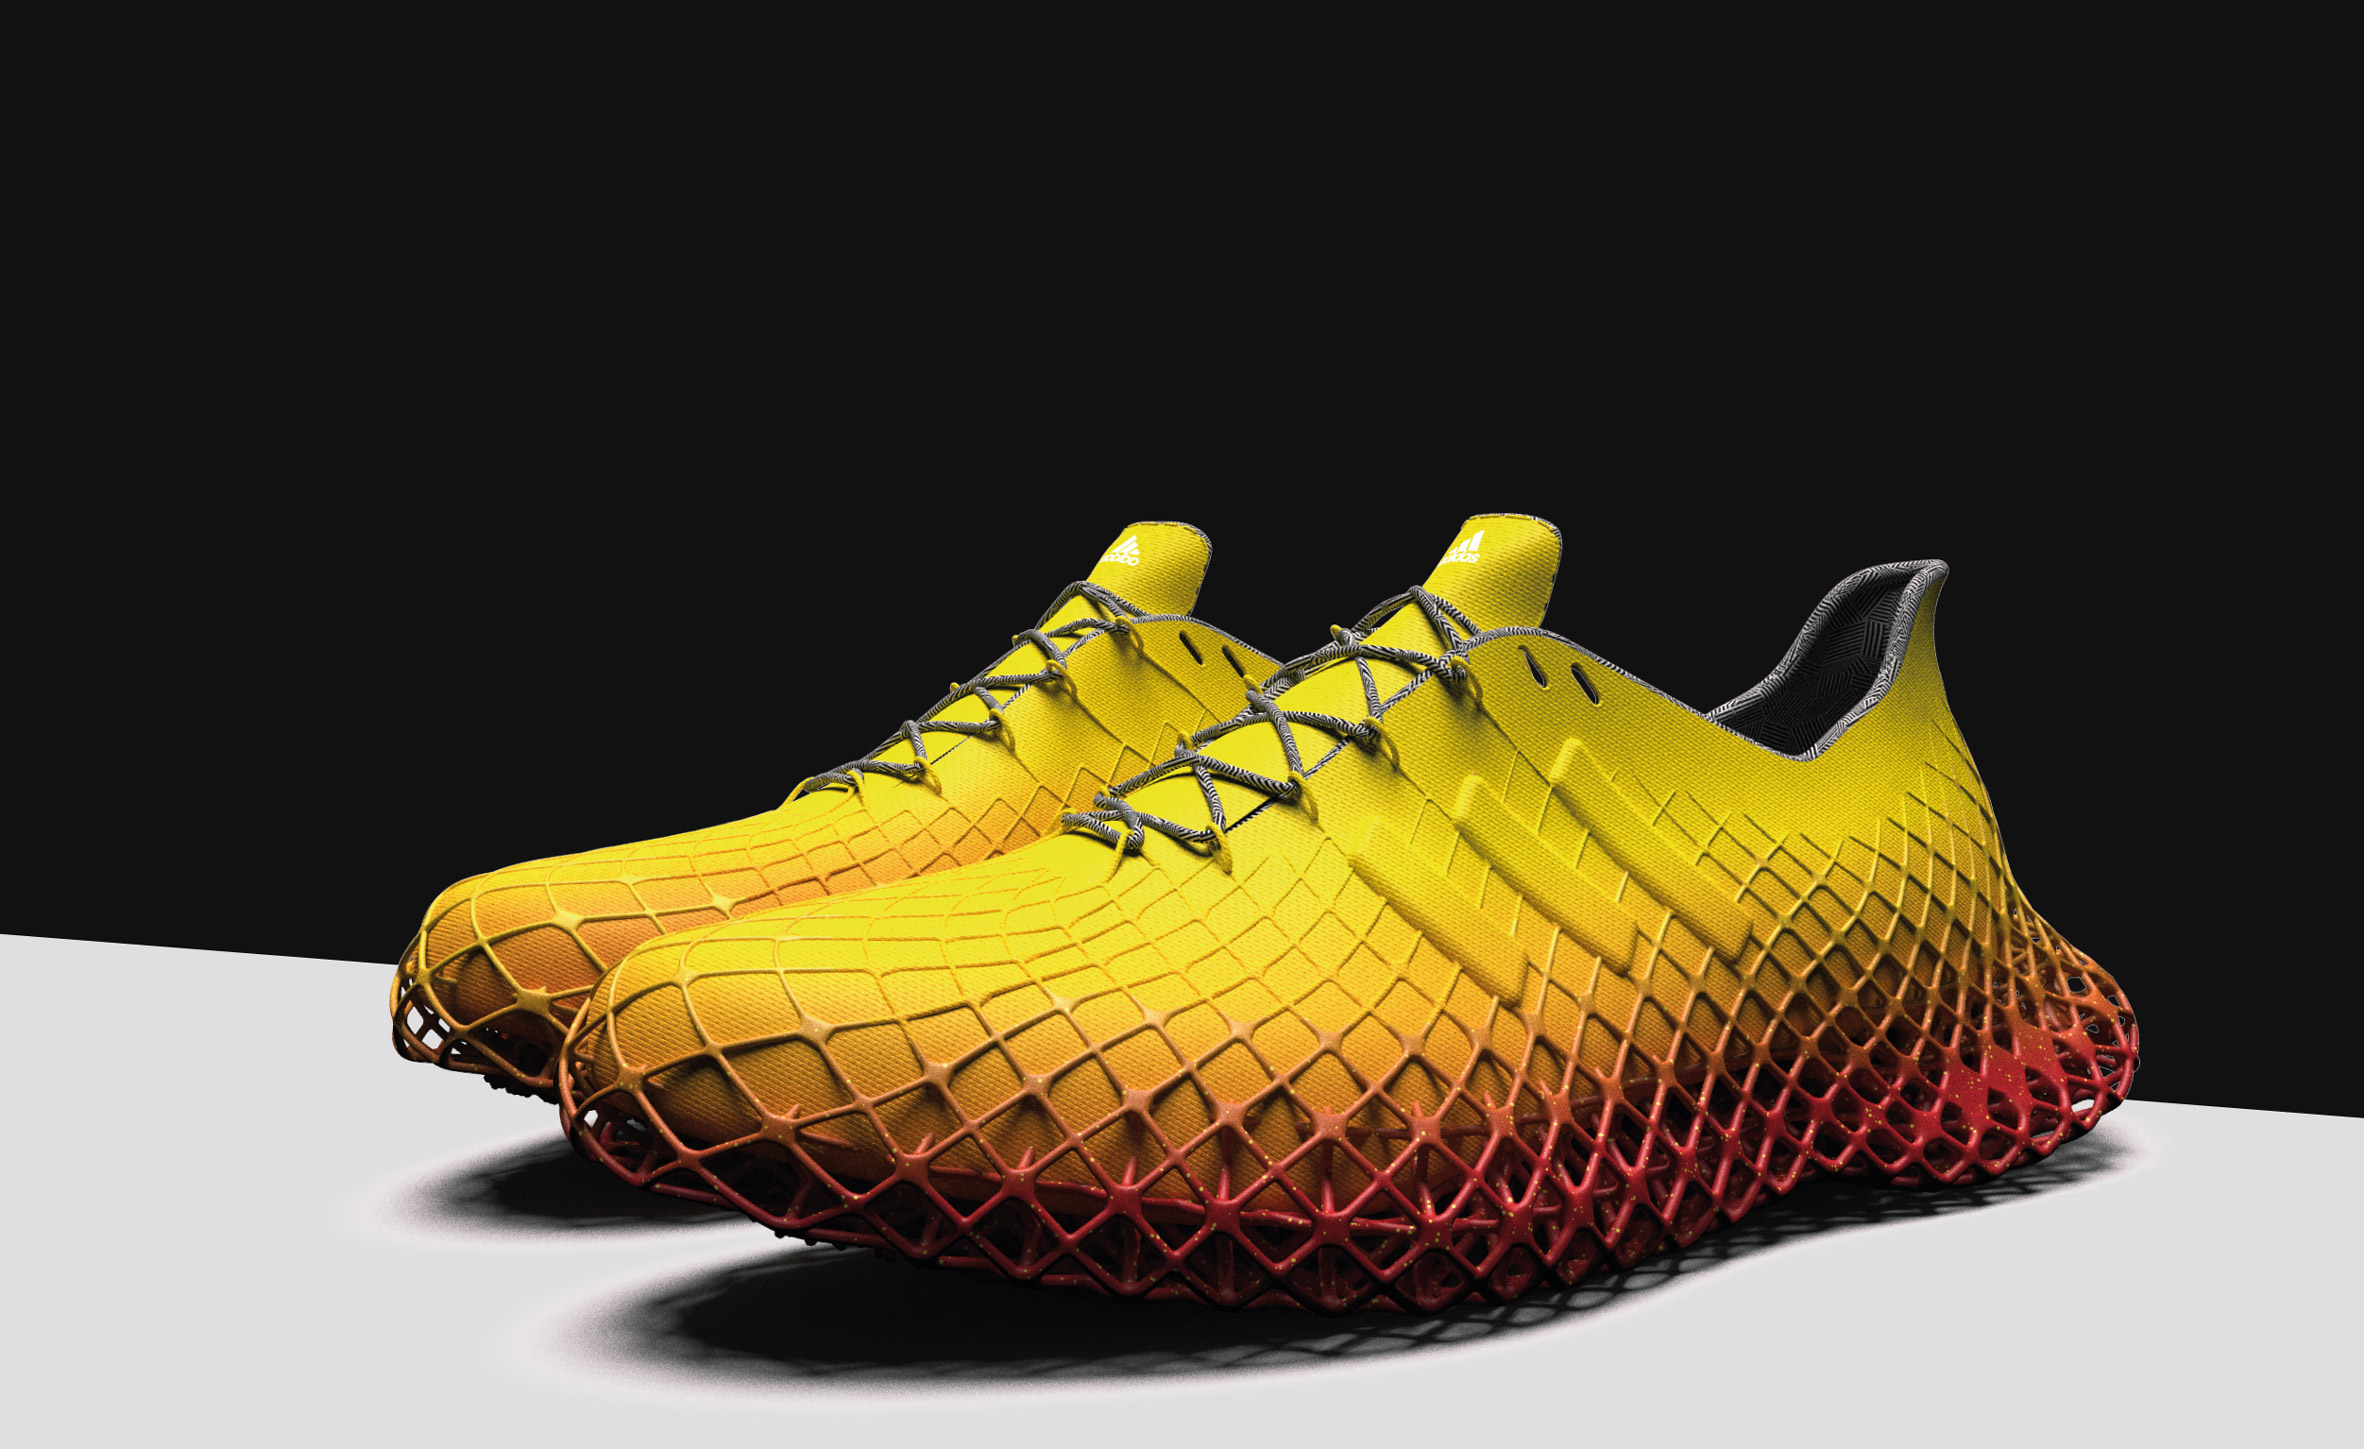 8b43e5a32da5 Adidas concept trainer mimics the effect of running on sand to increase  fitness